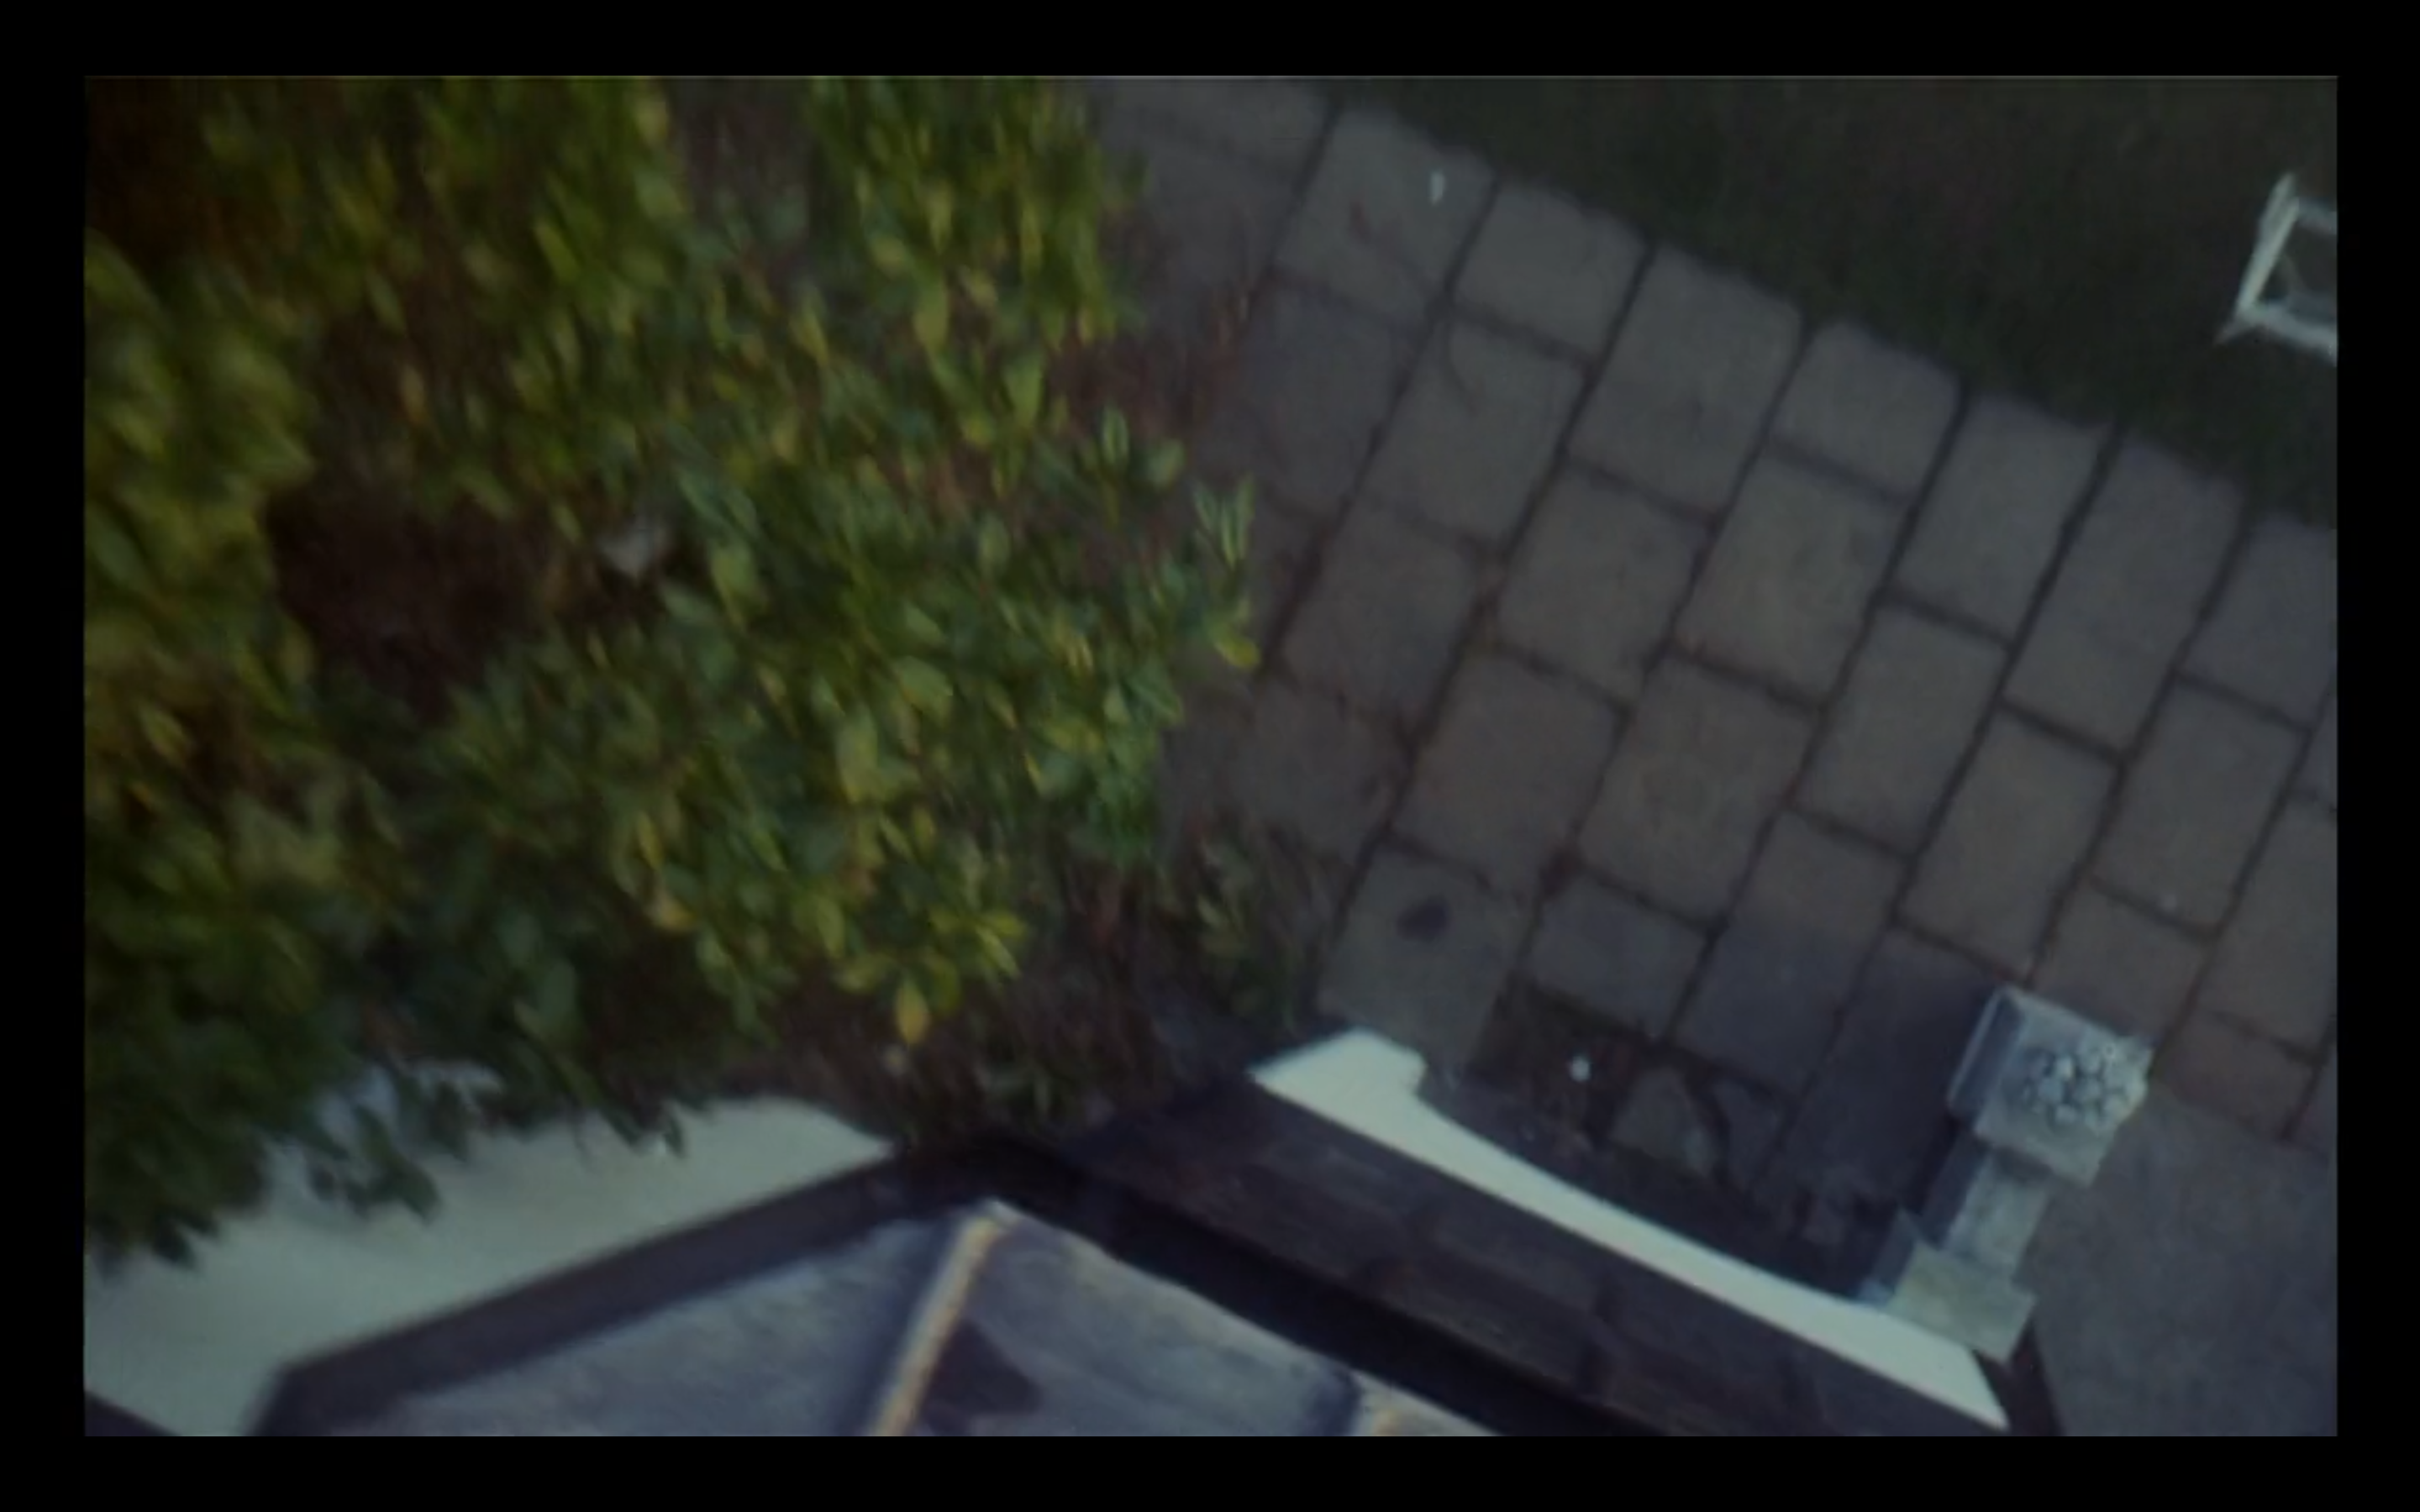 In A Clockwork Orange, Kubrick has the camera thrown out of a window to simulate a jump.